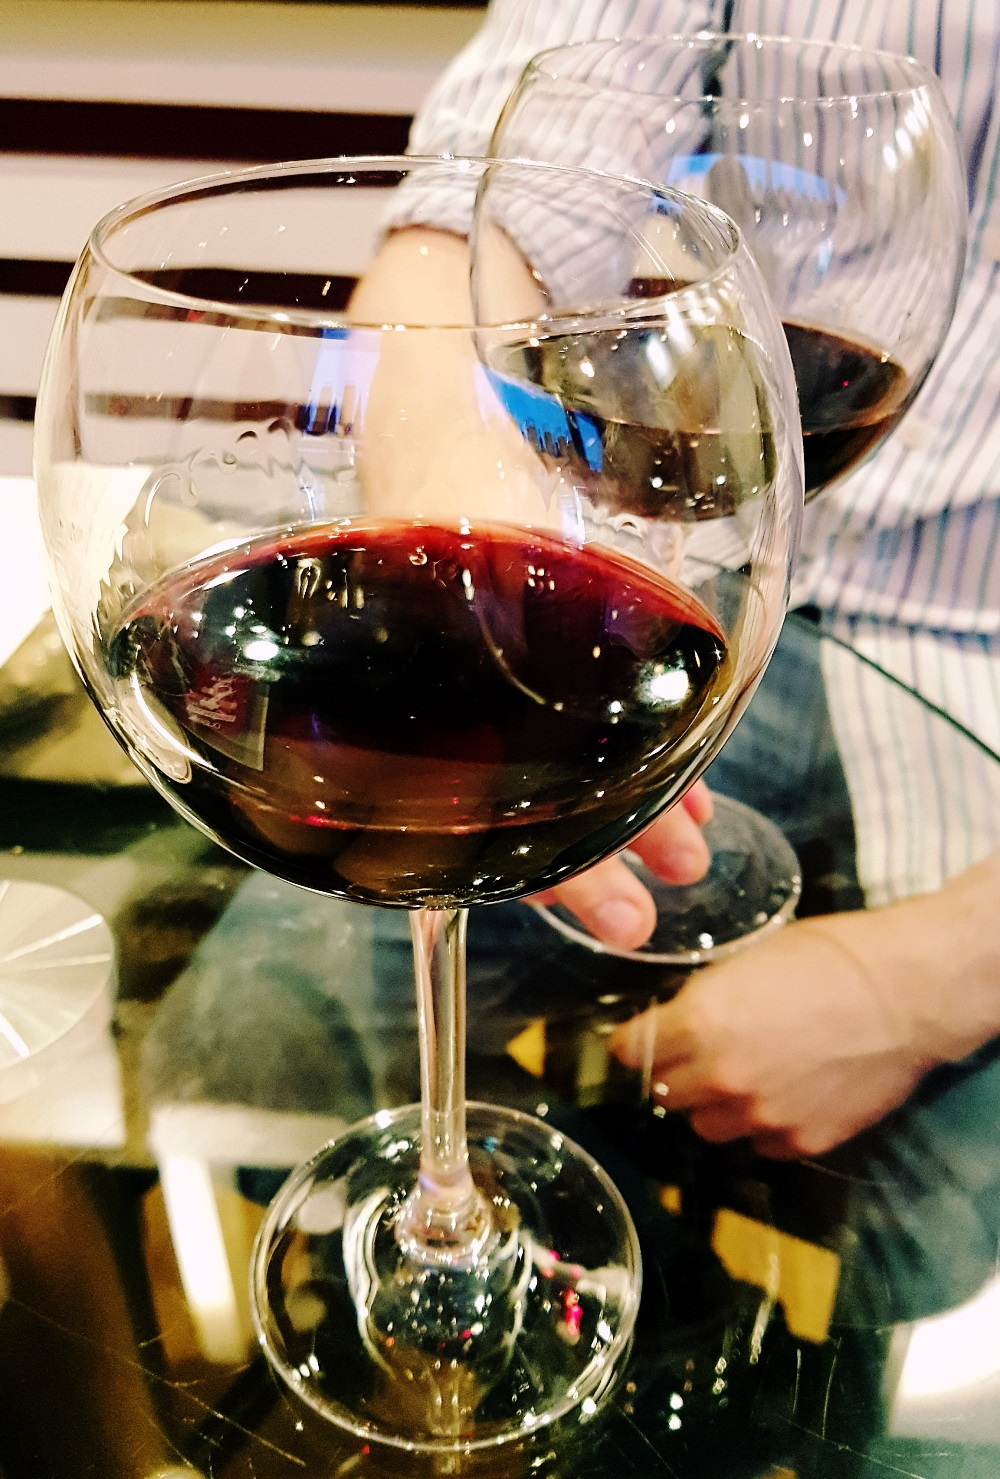 San Lorenzo red wine for Aperitalia at Veeno Leeds - Restaurant Review by BeckyBecky Blogs